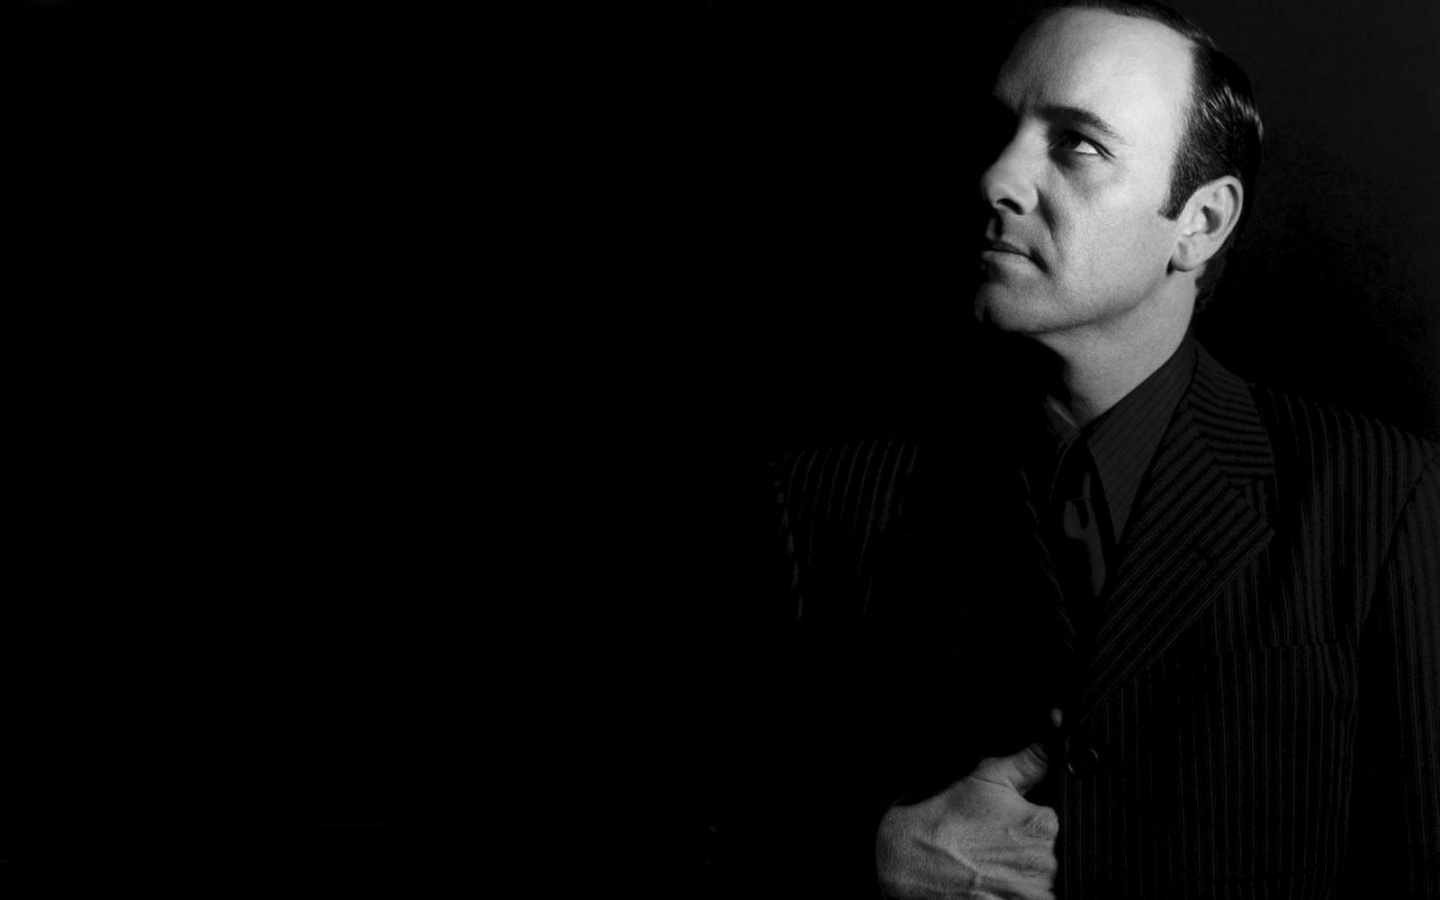 1440x900 - Kevin Spacey Wallpapers 1